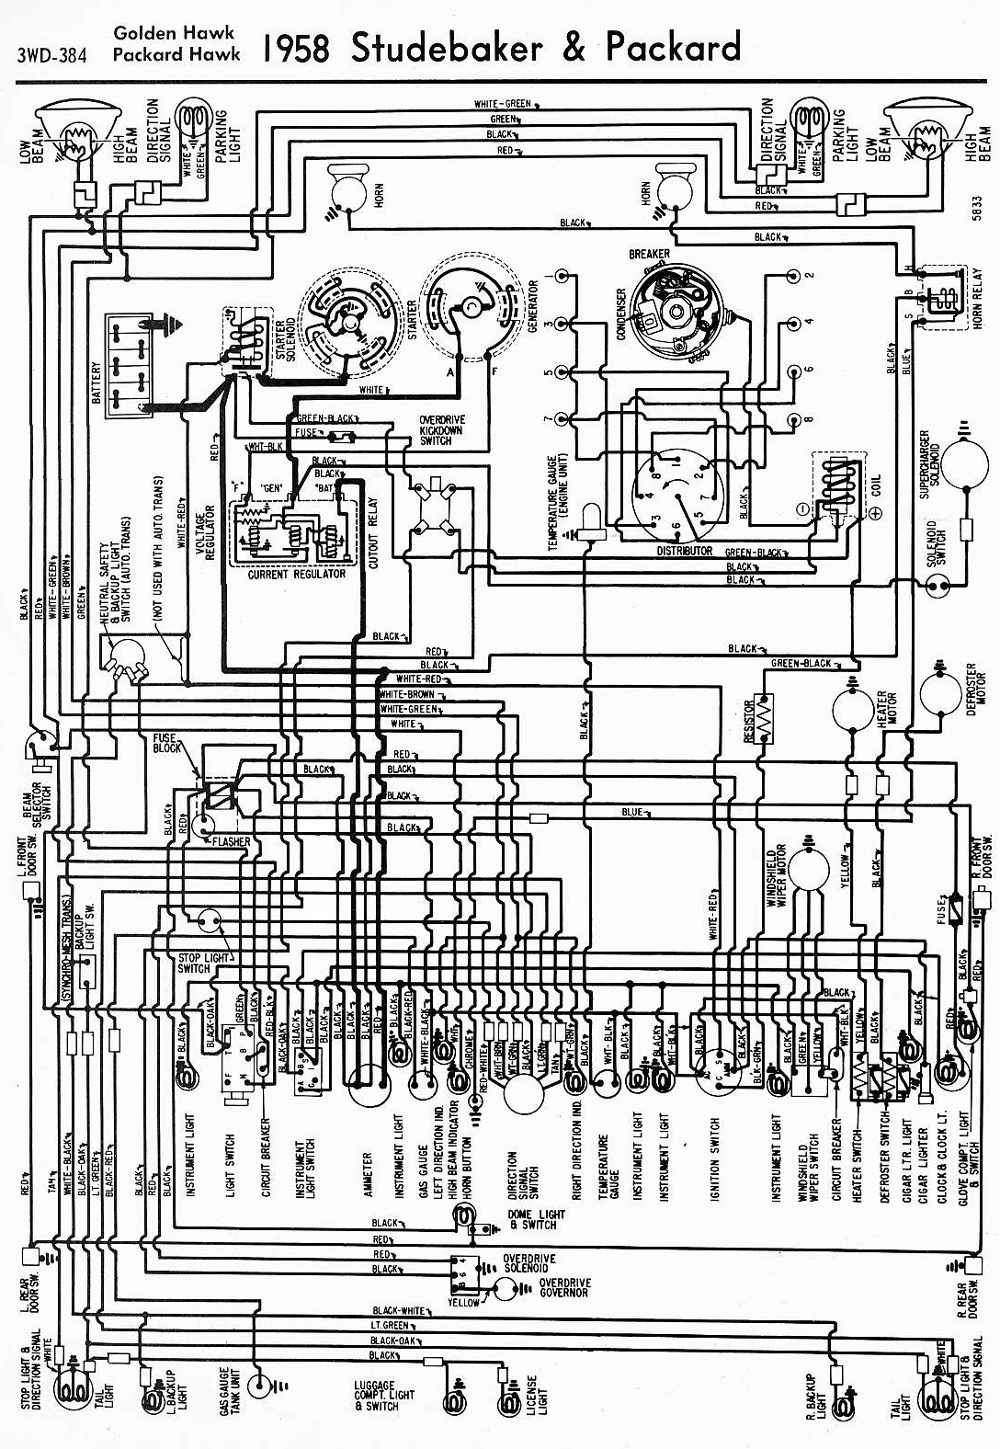 small resolution of packard wiring diagram simple wiring schema rh 4 aspire atlantis de 1941 packard 1945 packard